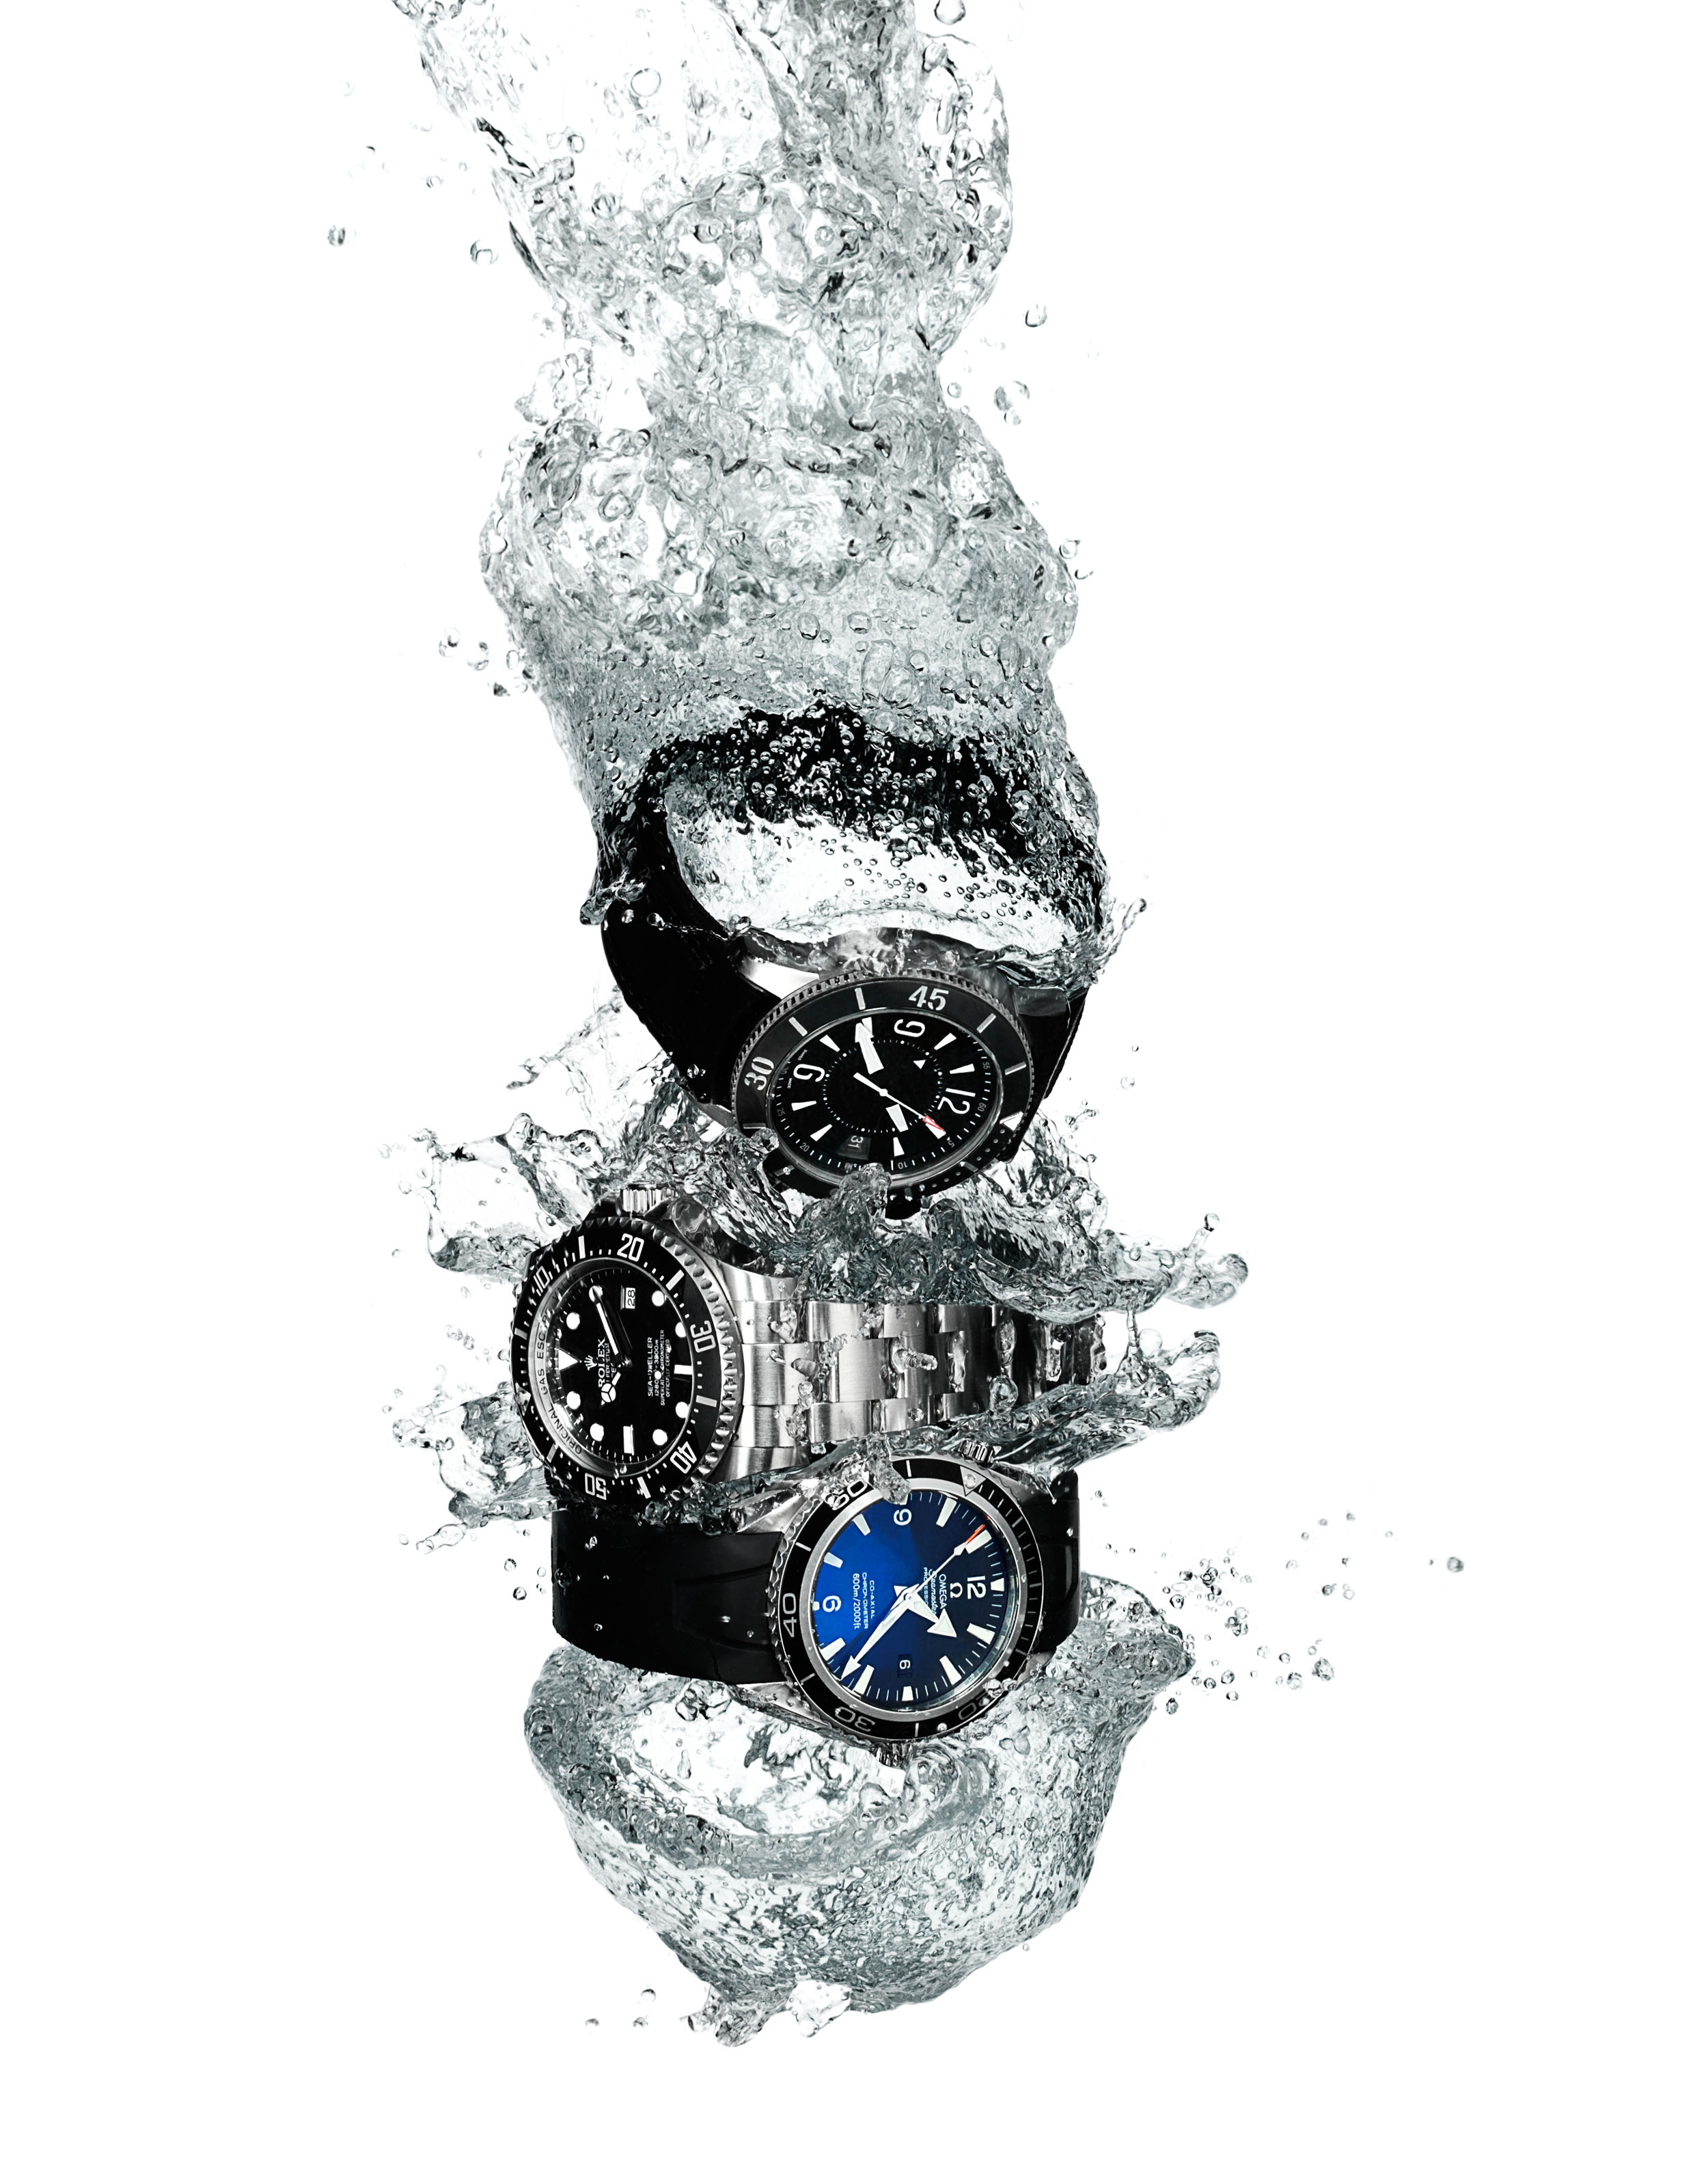 +diving_watches_204+224crp_RSv2.jpg